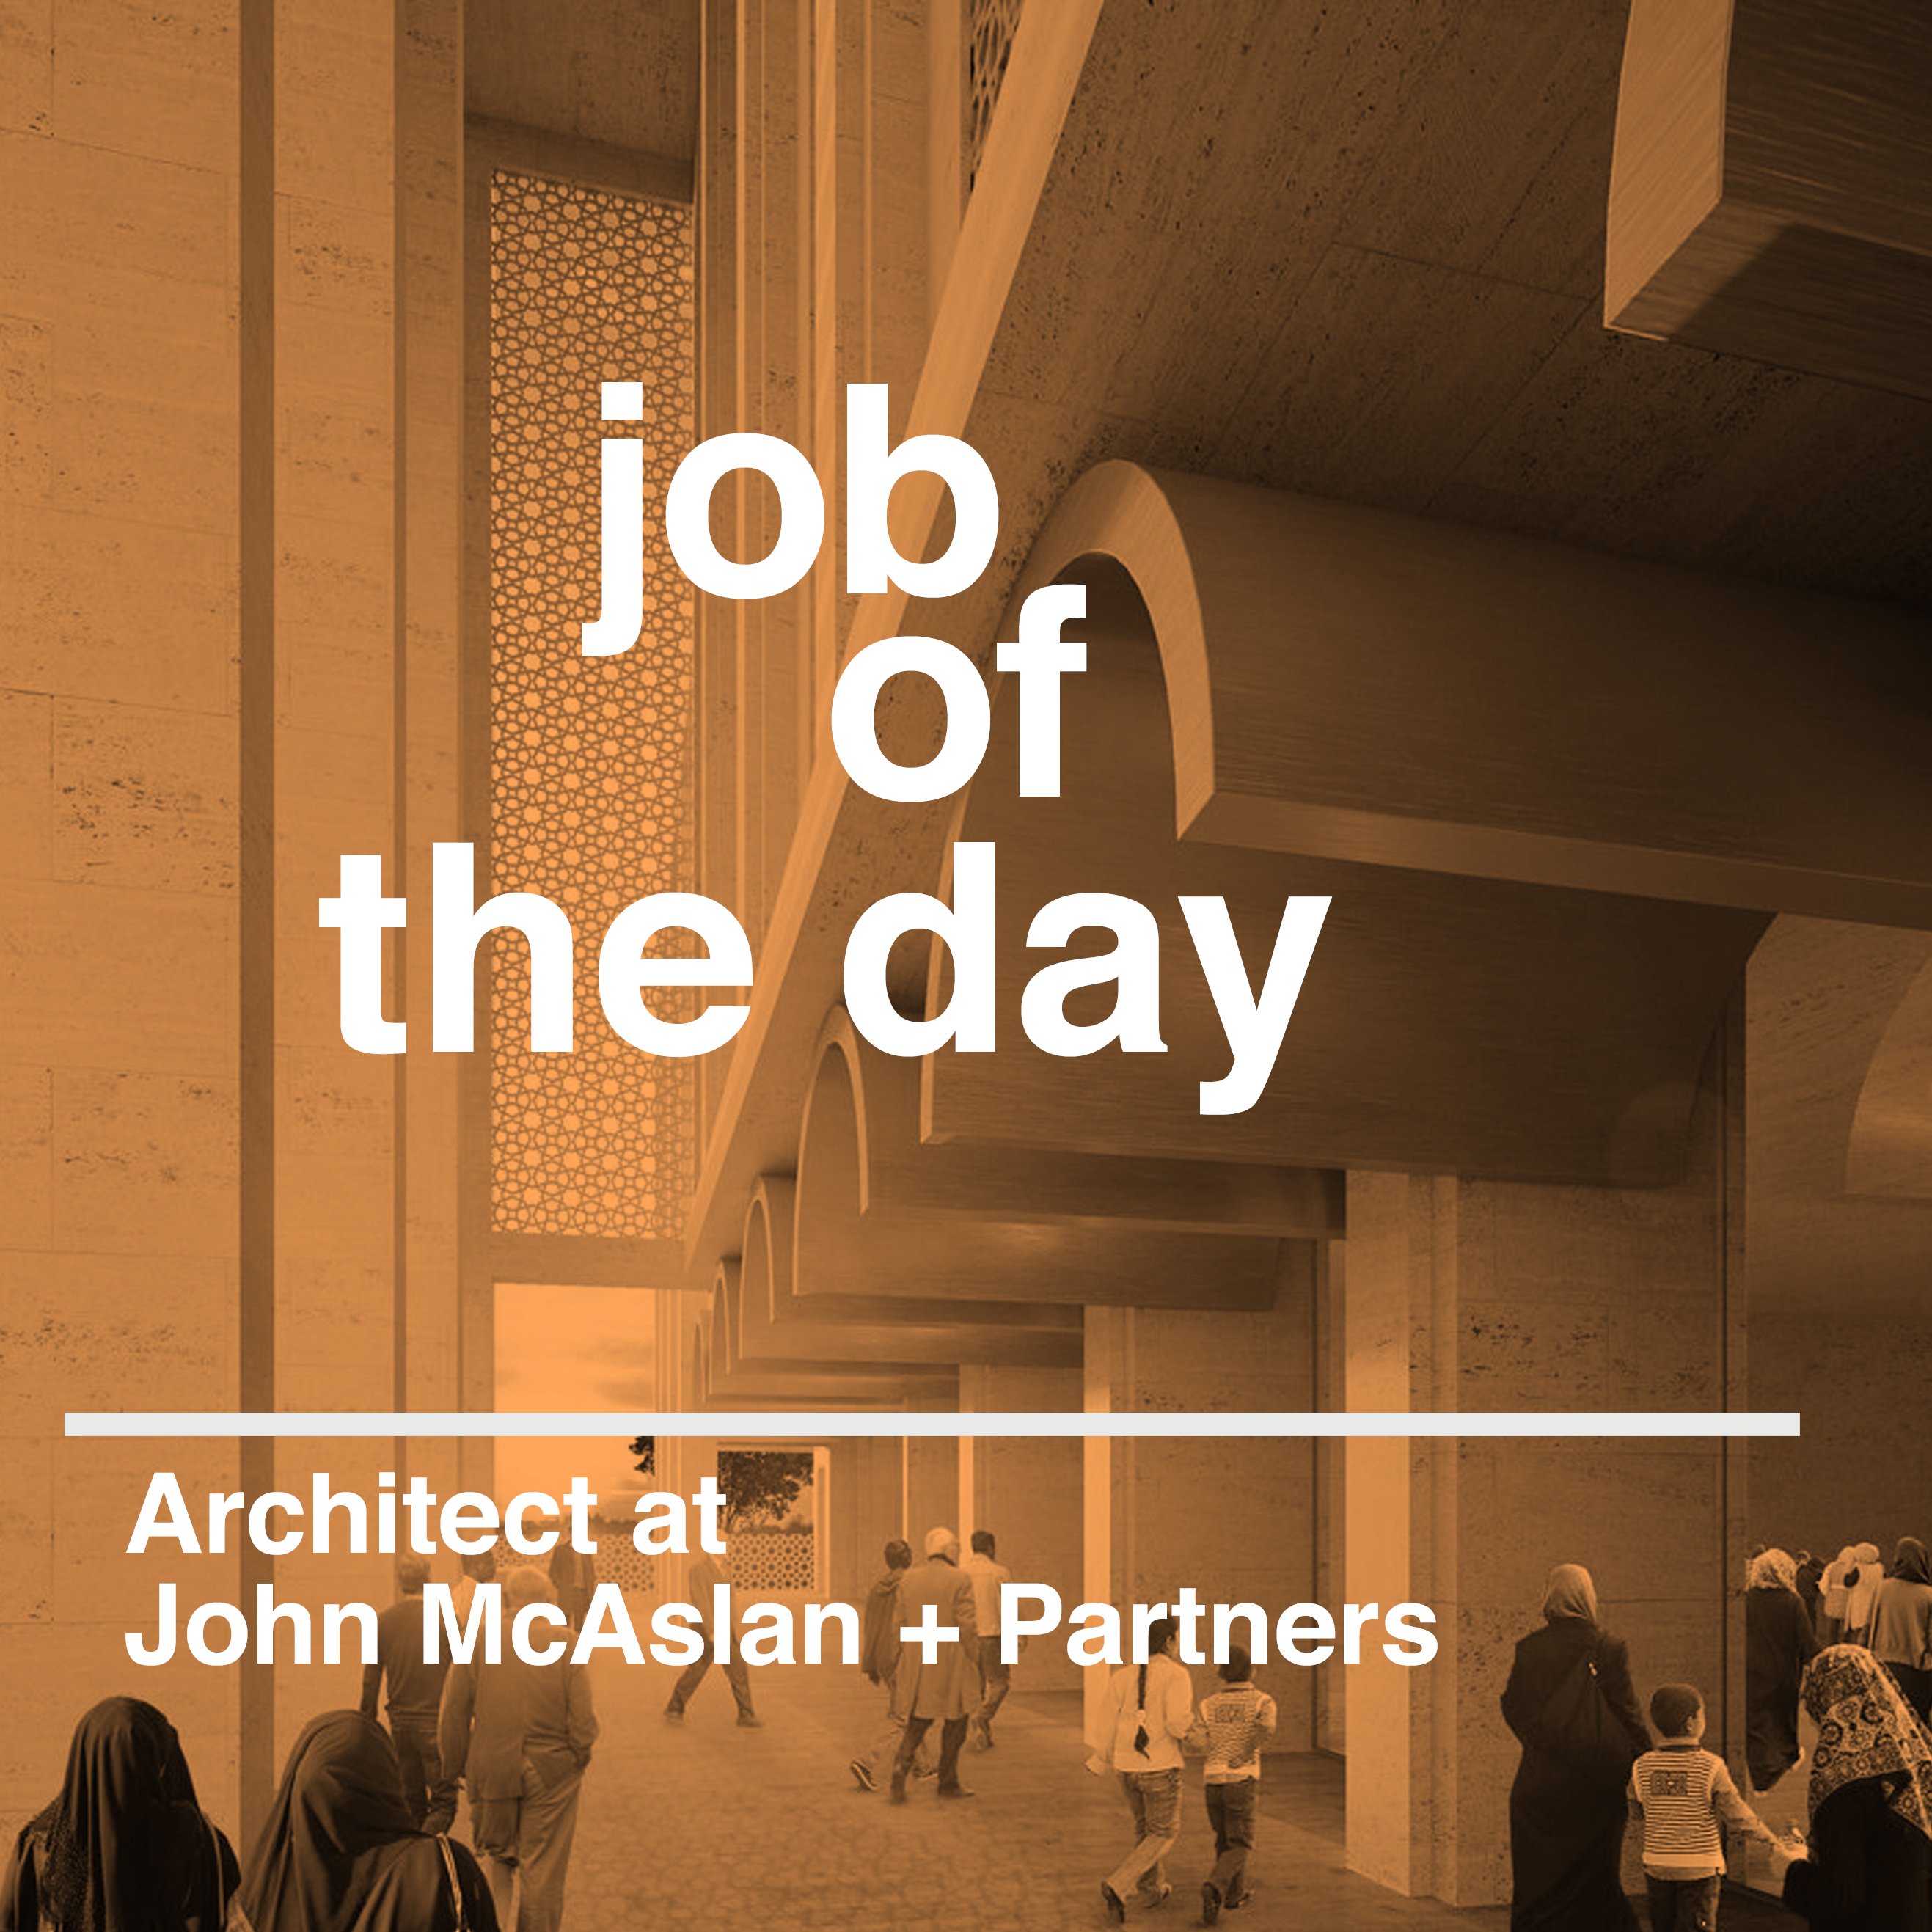 job of the day archives Dezeen